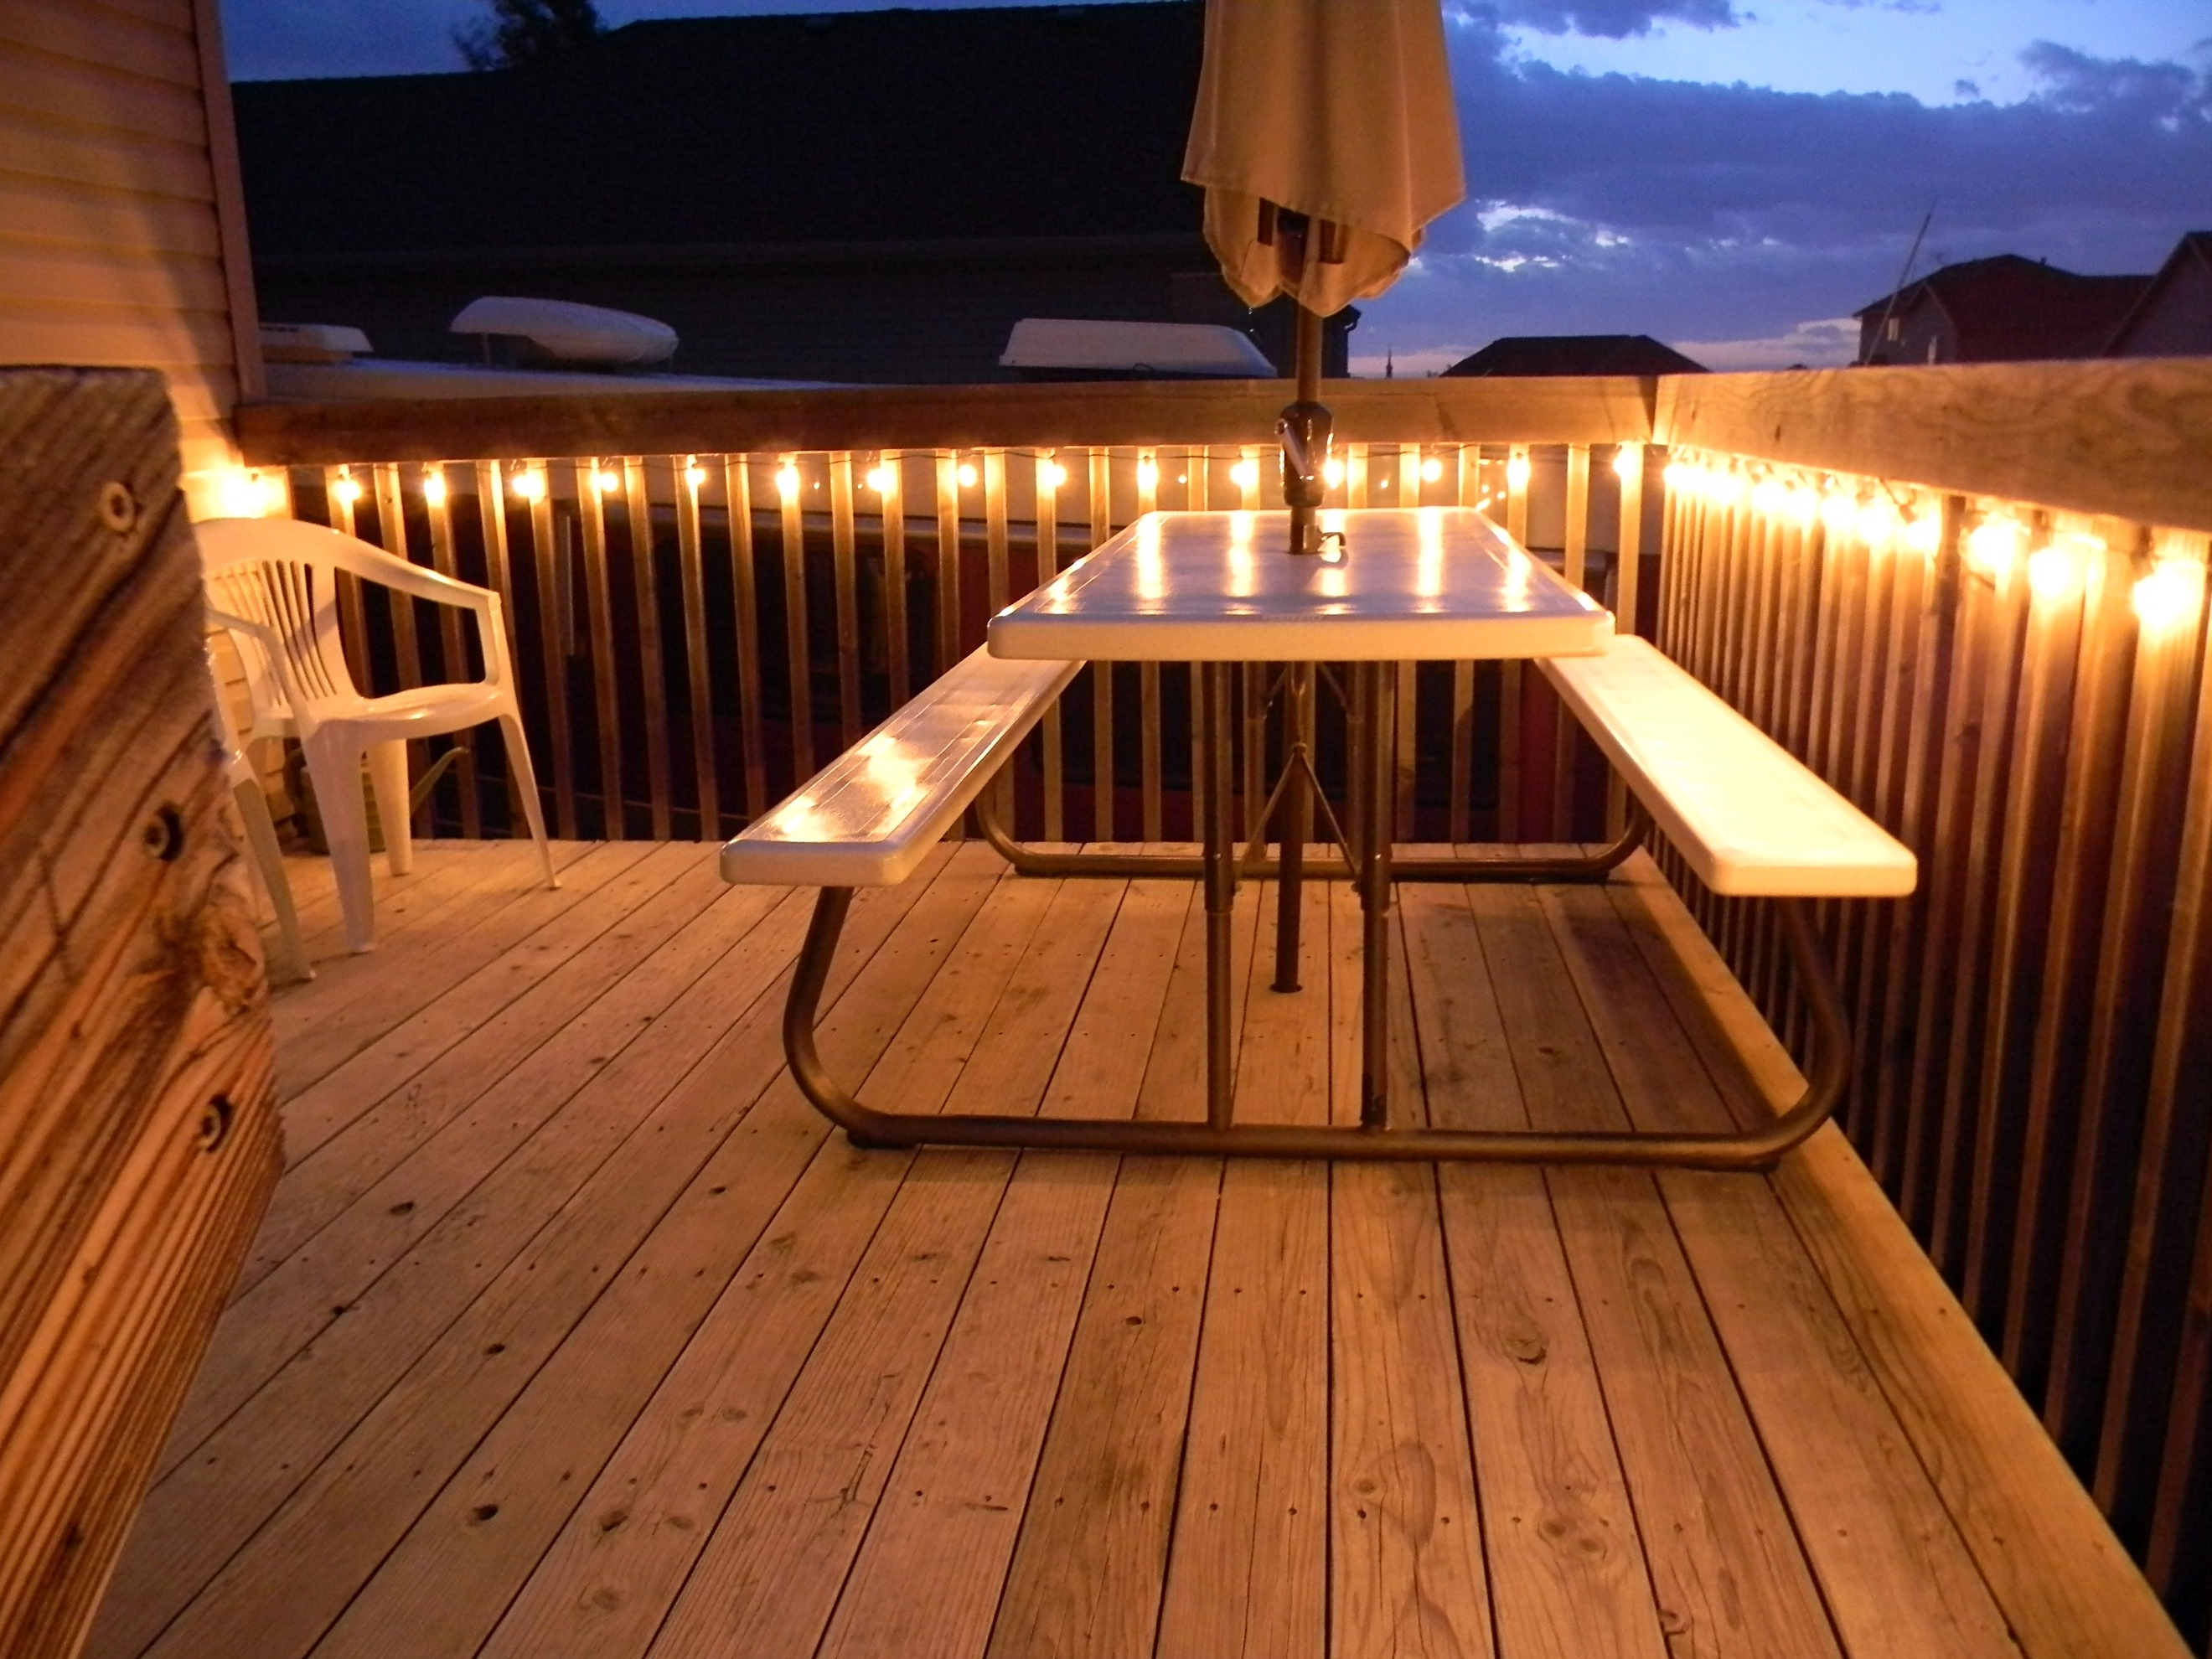 Garden Ideas : Low Voltage Deck Lighting Ideas Some Tips To Get The Pertaining To Recent Garden Low Voltage Deck Lighting (View 9 of 20)